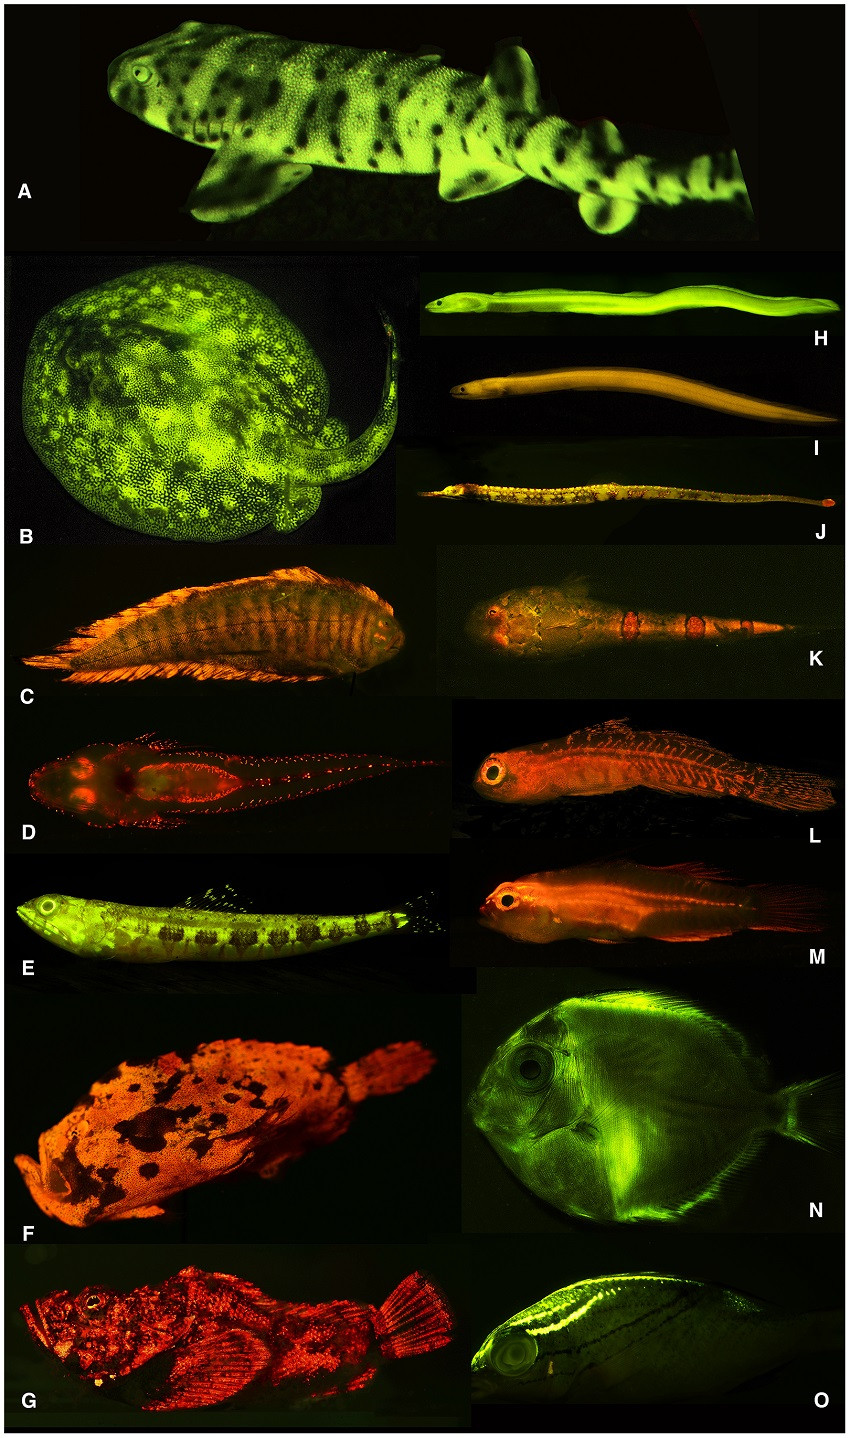 A variety of fish that show biofluorescence